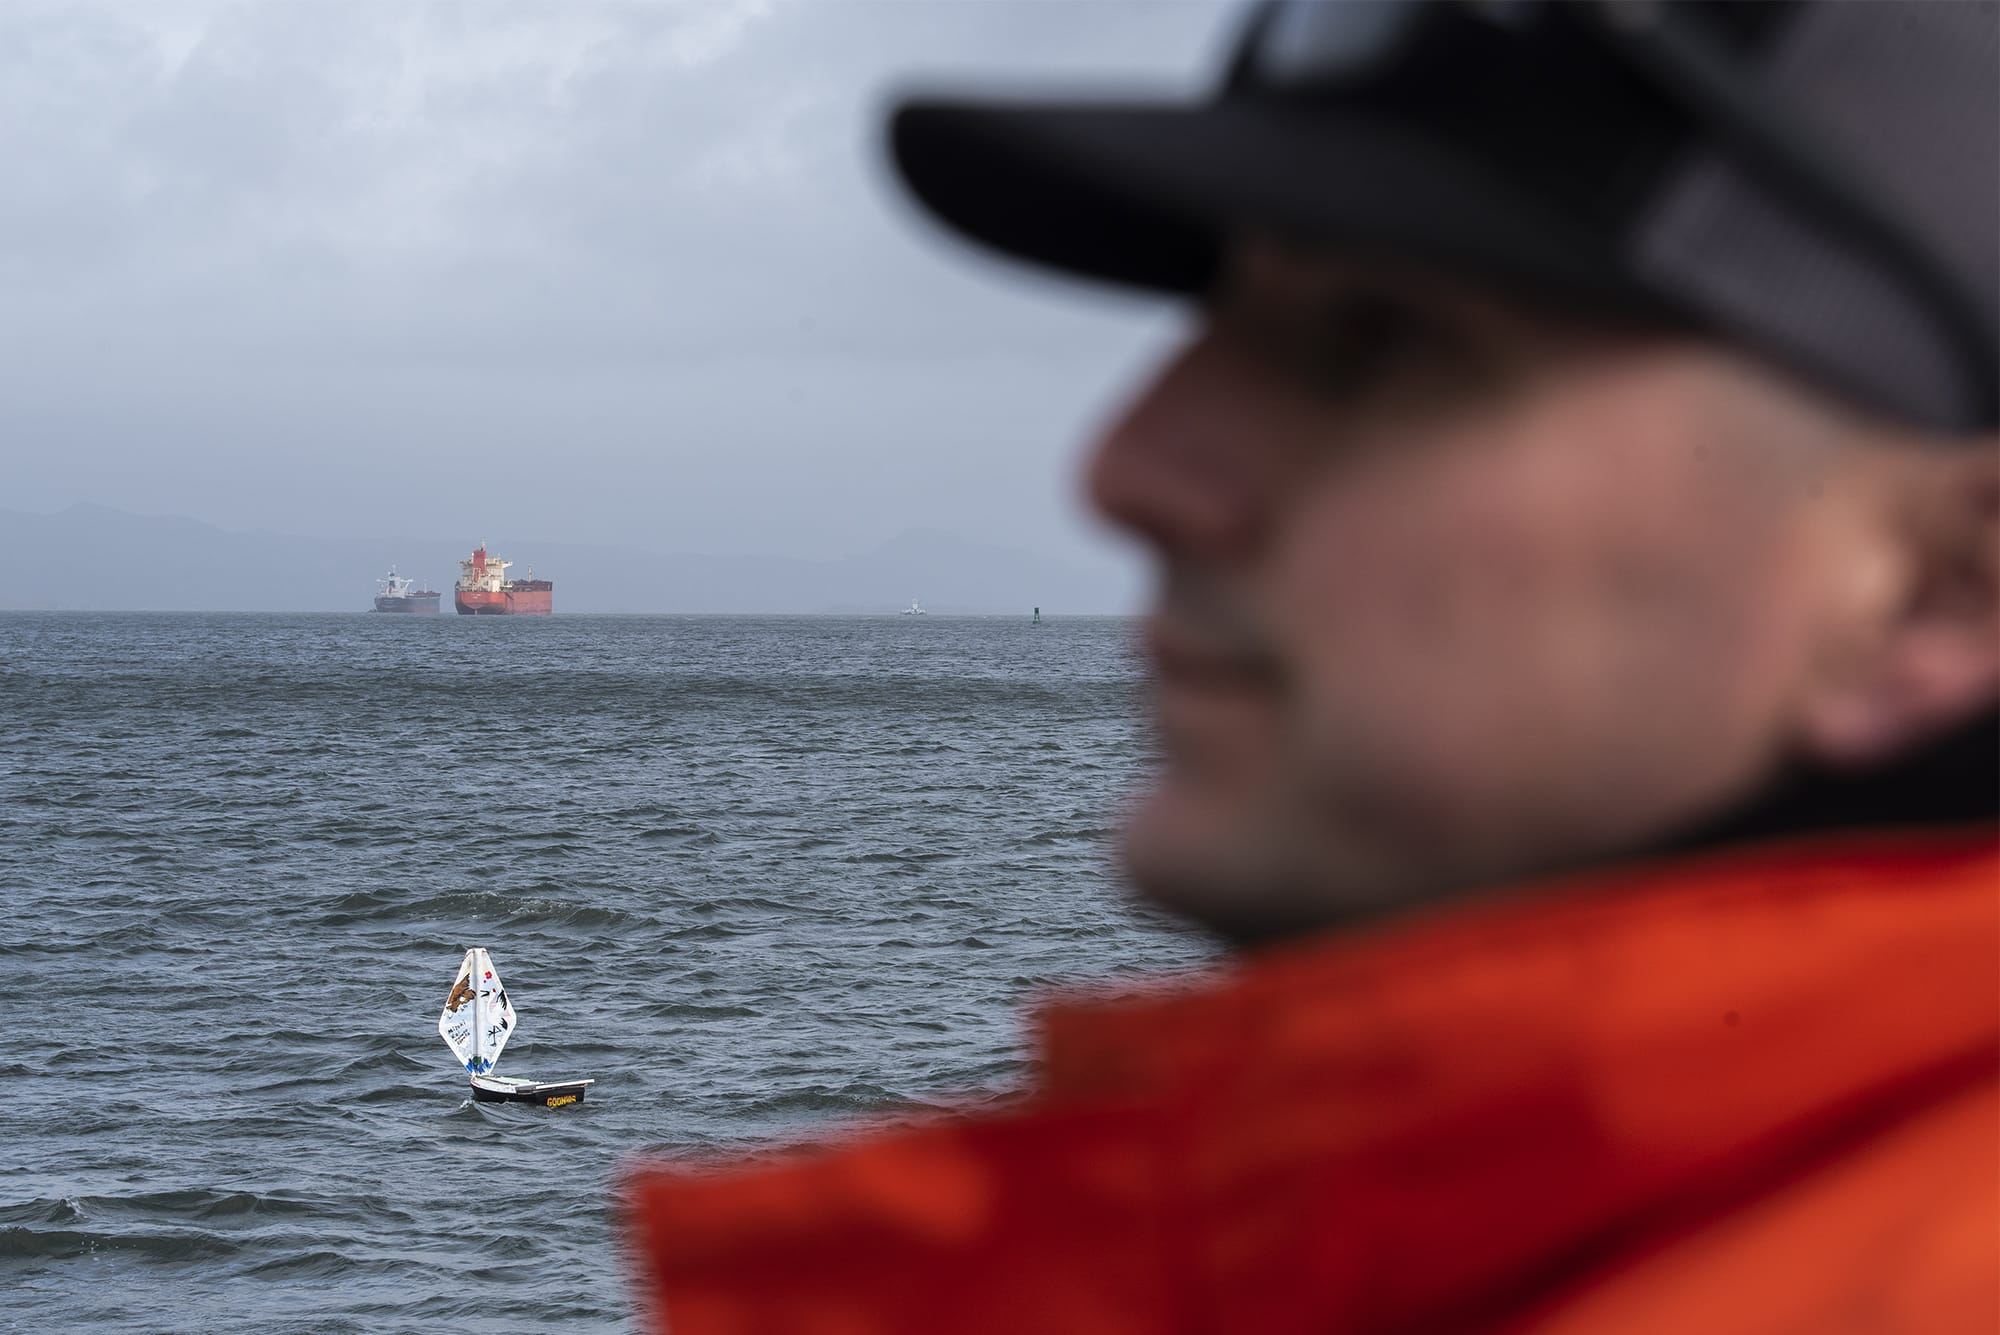 Pilot boat operator Frank Shucks watches as the mini boat S/V The Goonies sails down the Columbia River during a test launch in Astoria, Ore., on Tuesday afternoon, Jan. 21, 2020.  (Nathan Howard/The Columbian)